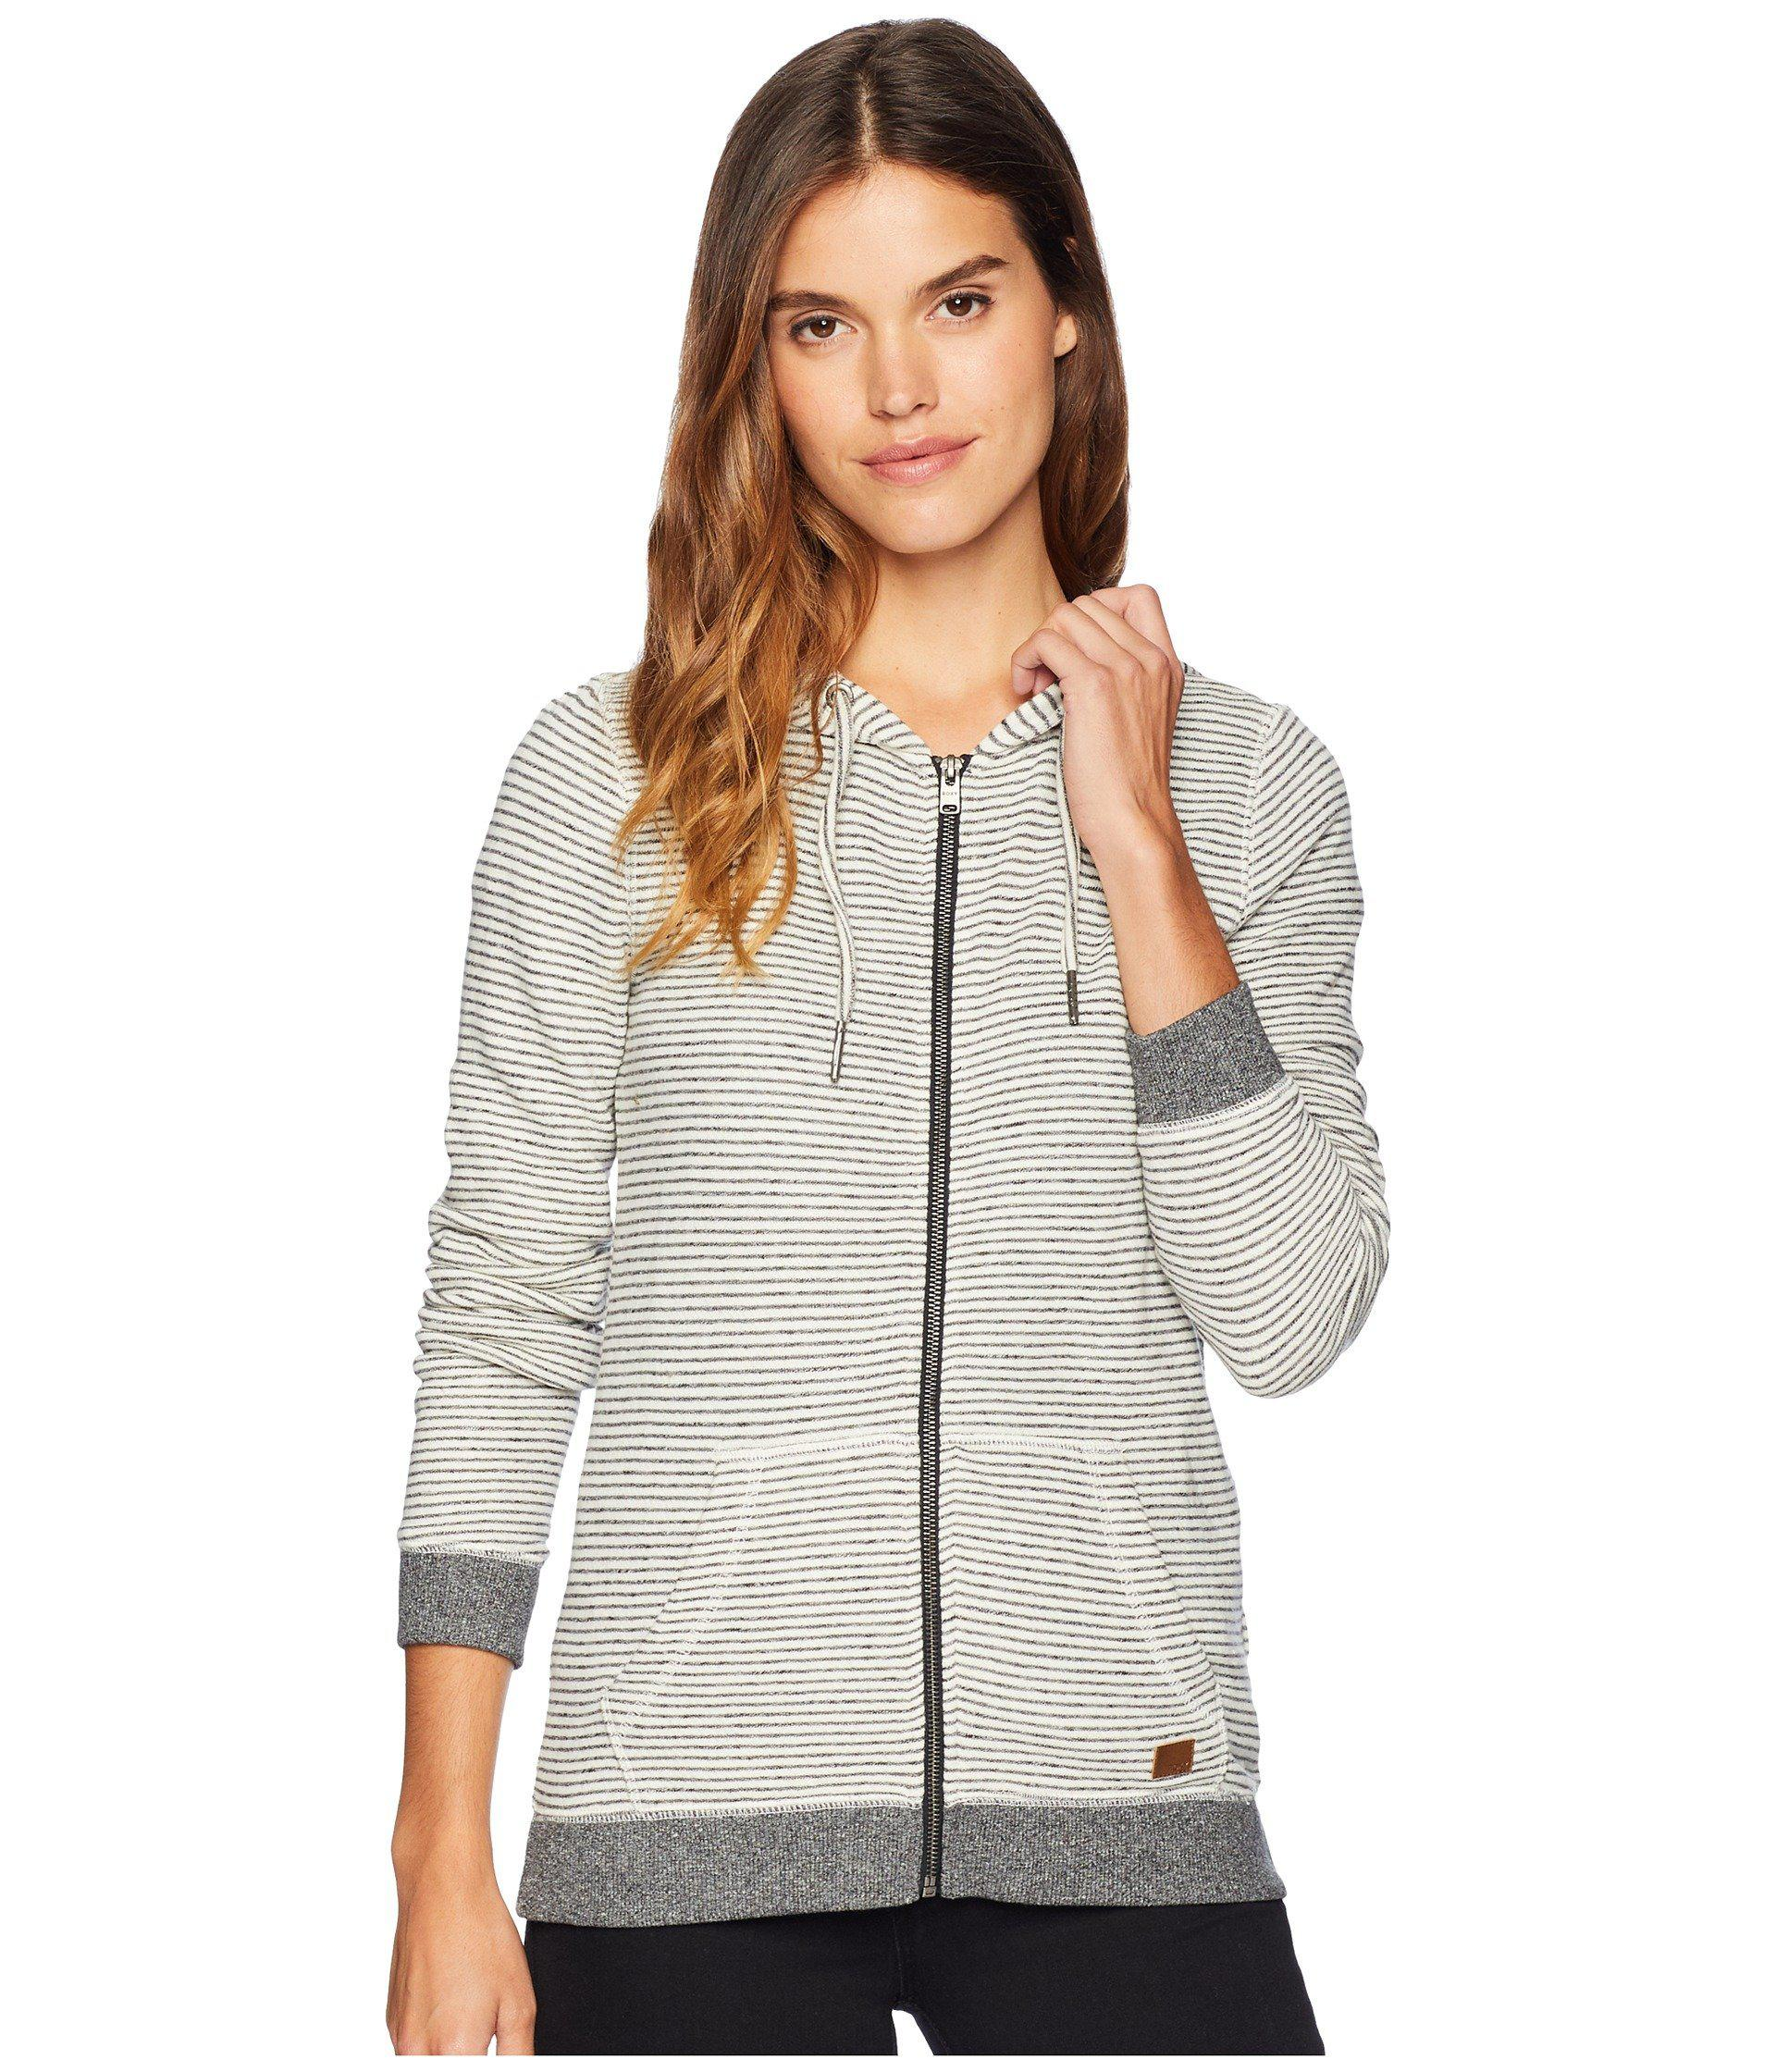 592b01080a41 Lyst - Roxy Trippin Stripes Fleece Full Zip Top (turbulence Thin ...